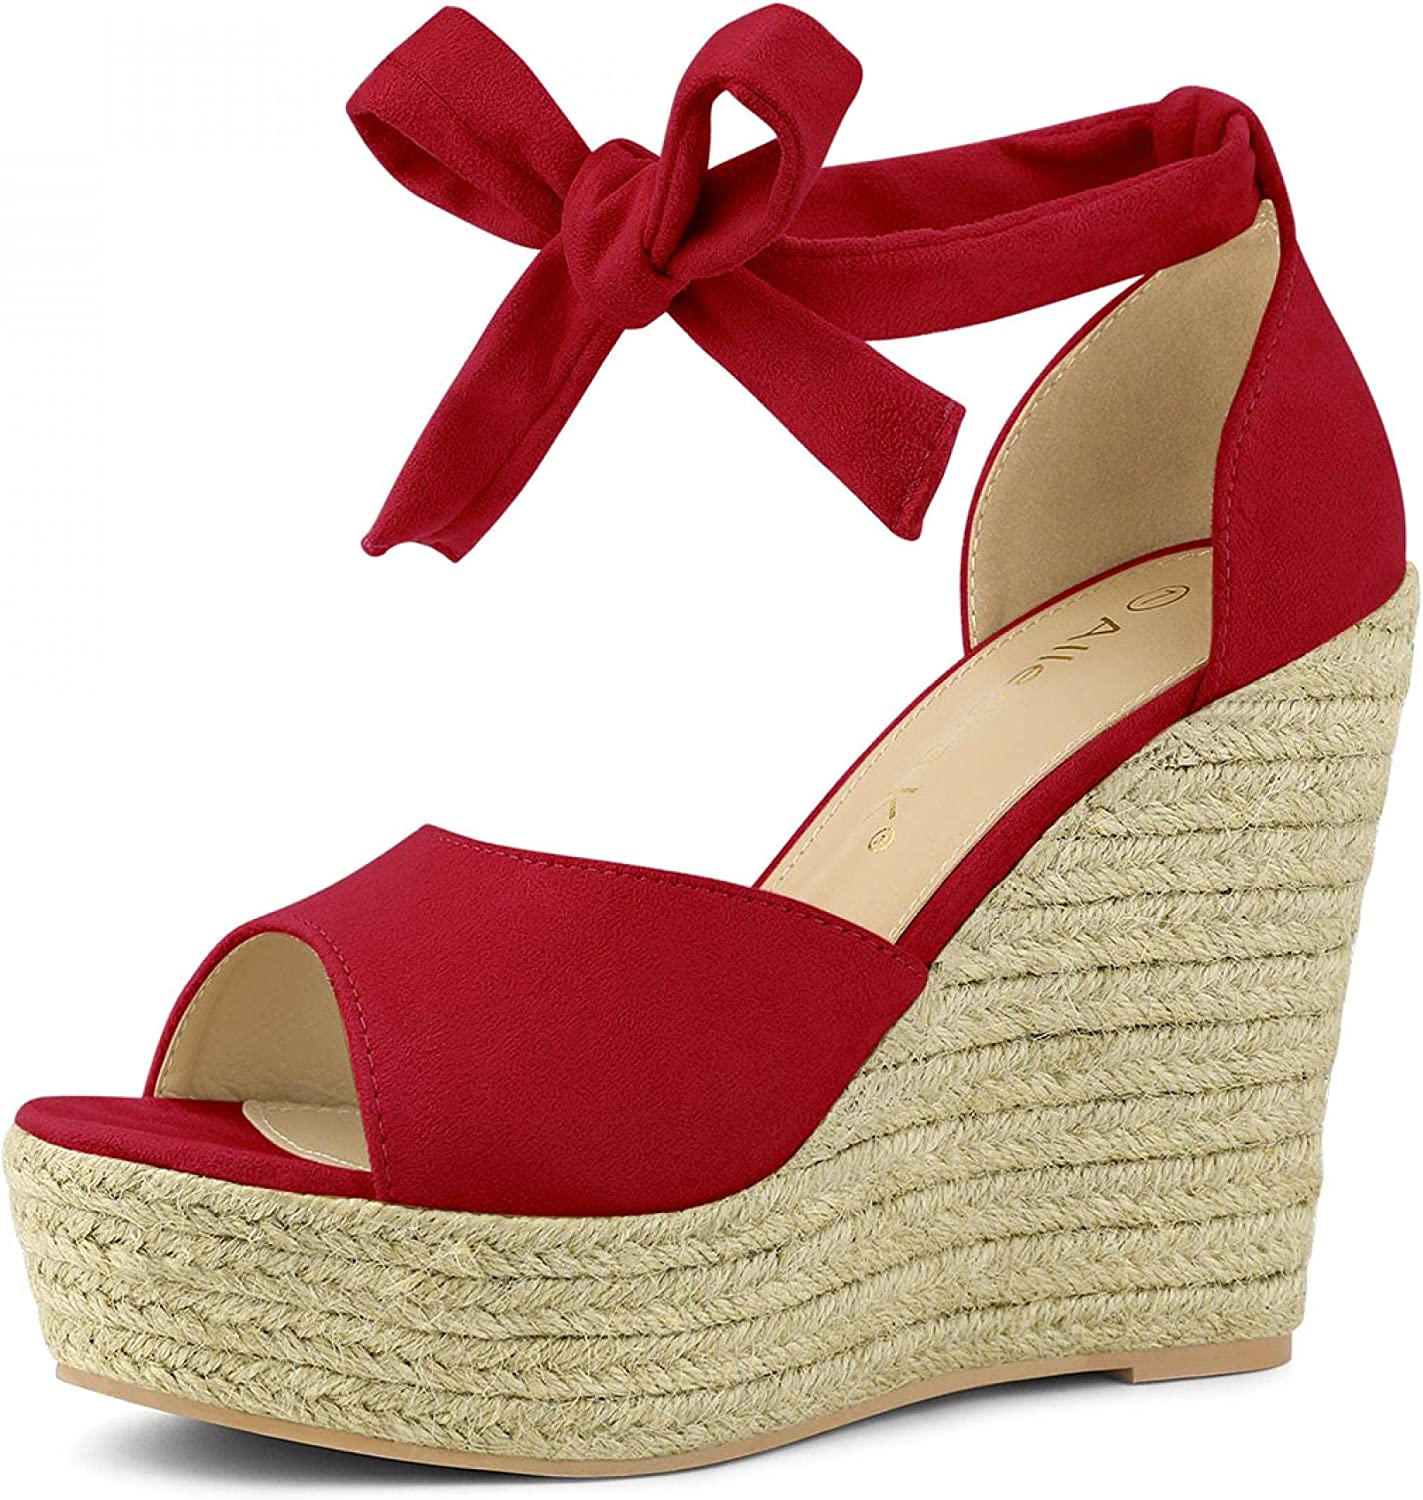 Be super welcome Allegra Max 73% OFF K Women's Espadrilles Tie Ankle Up Wedges Strap Sandals